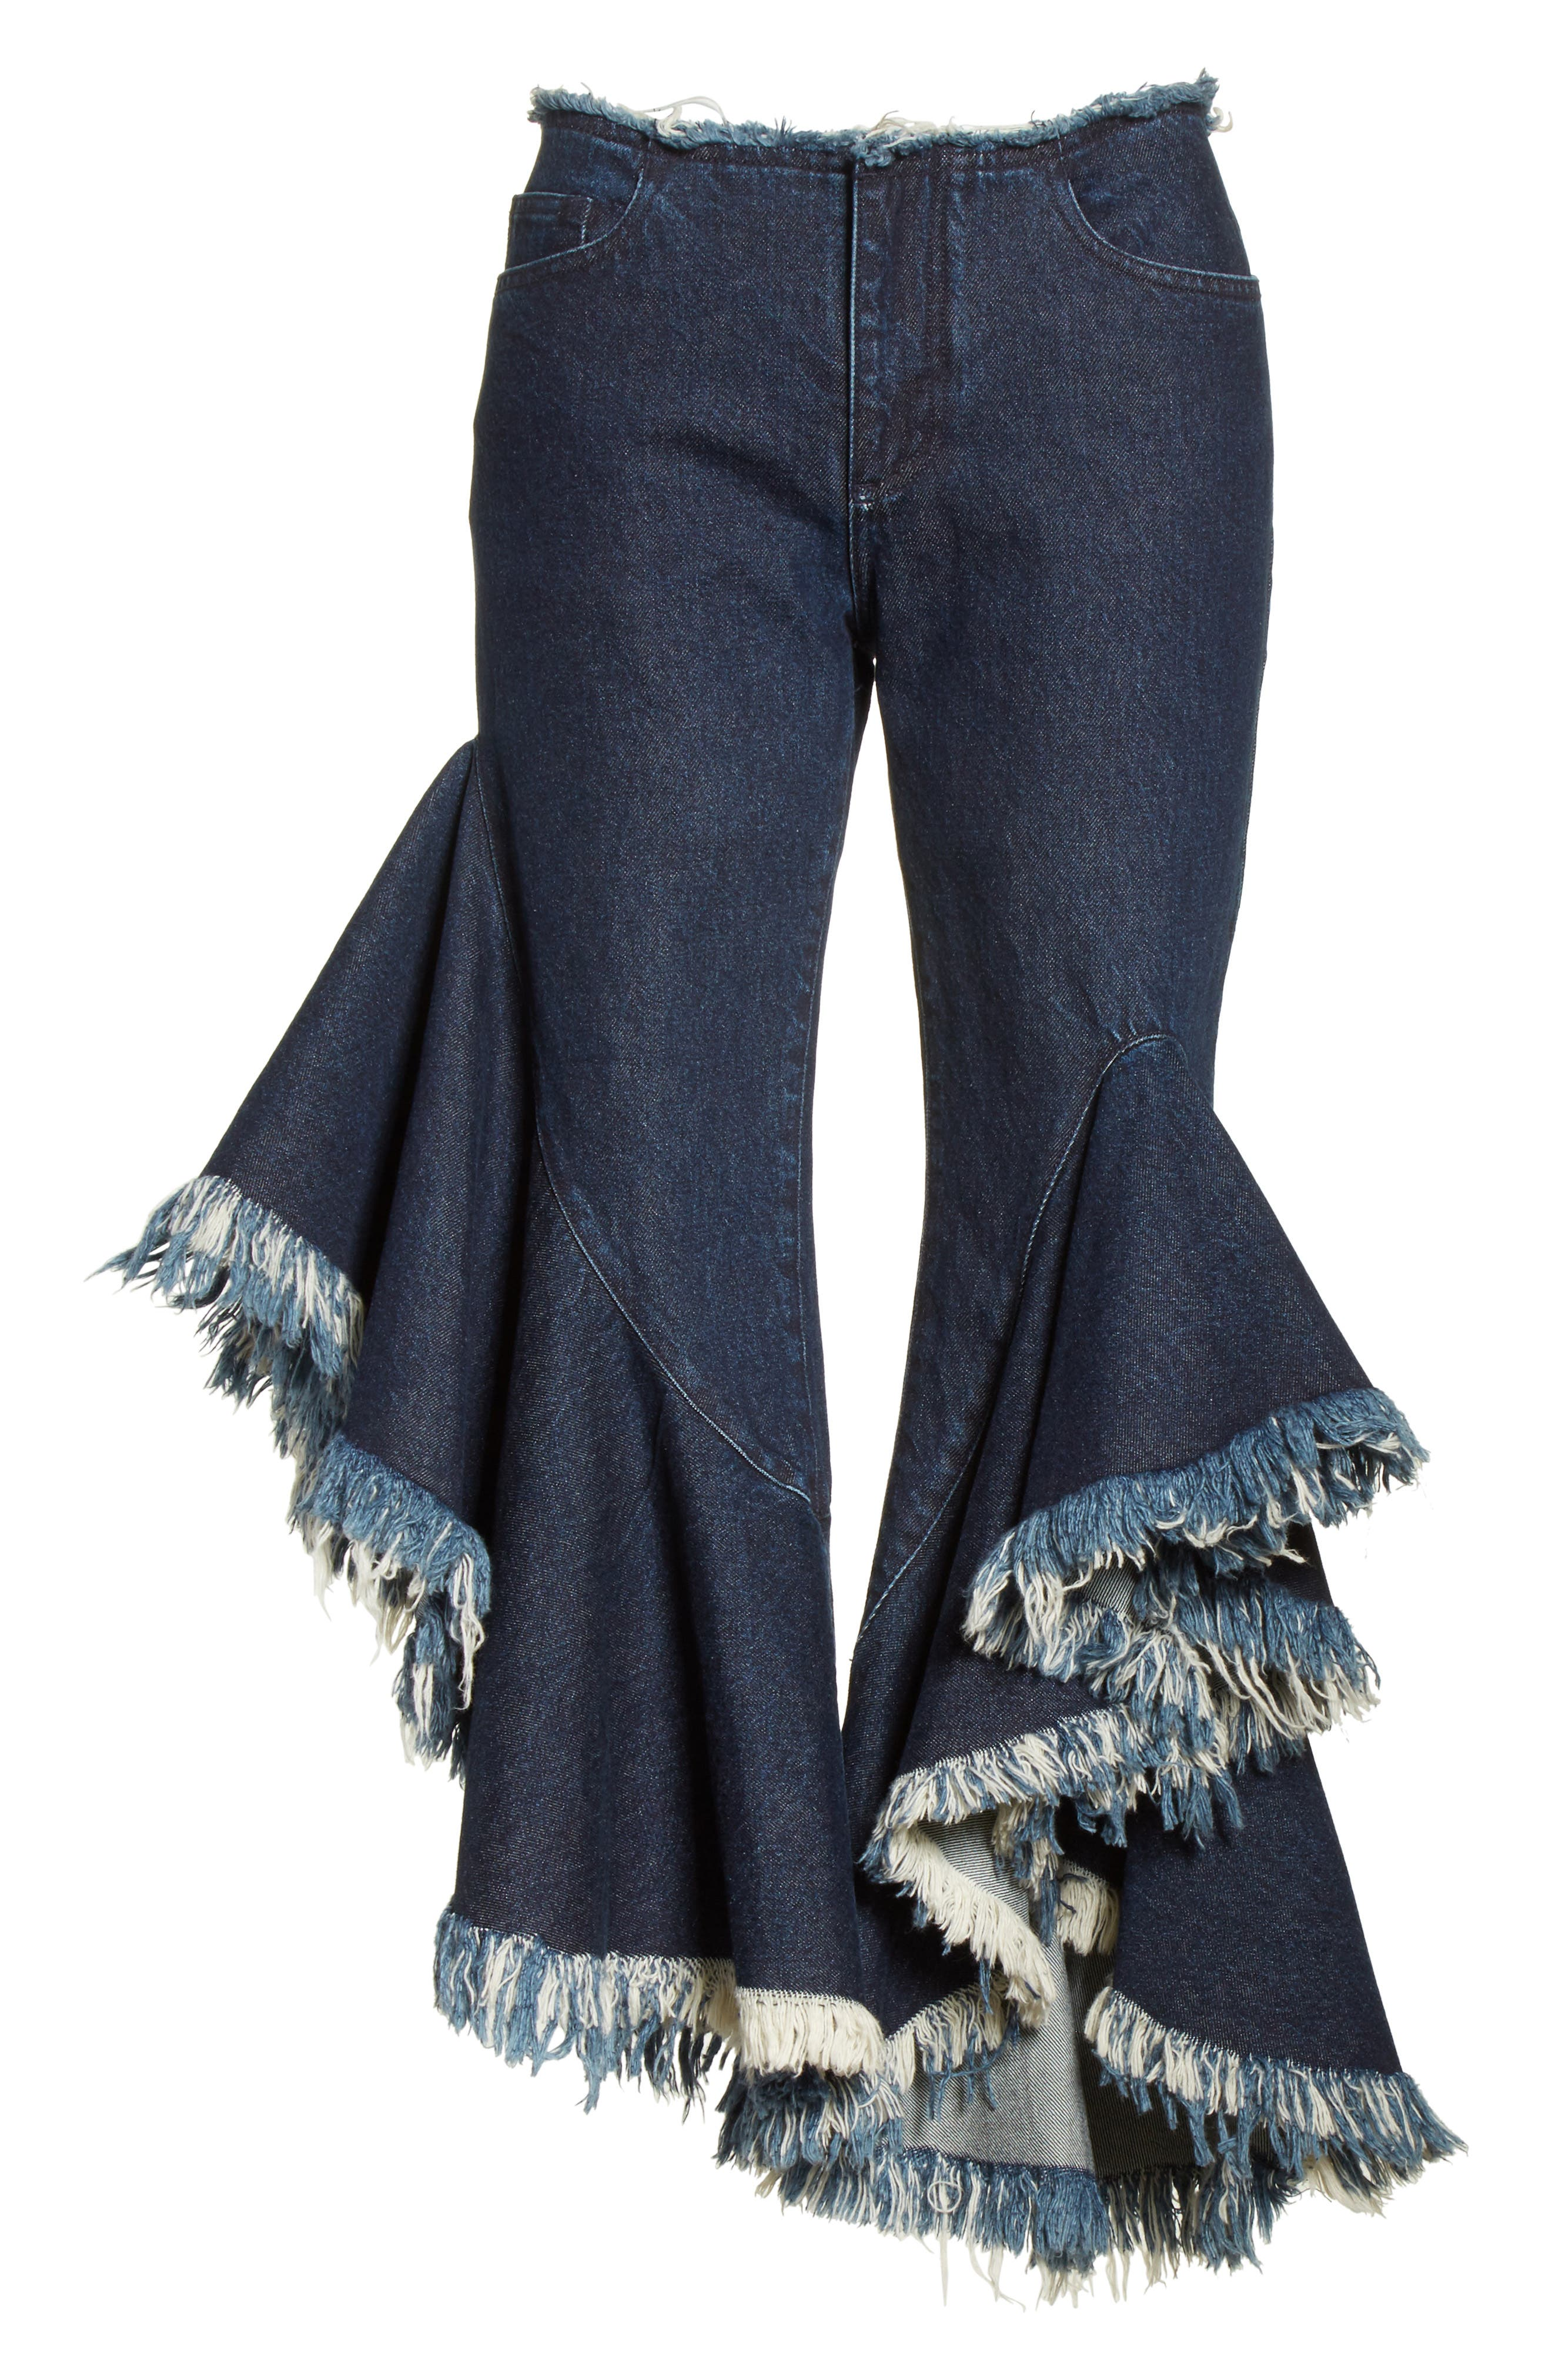 Marques'Almeida Frill Flare Crop Jeans,                             Alternate thumbnail 6, color,                             400